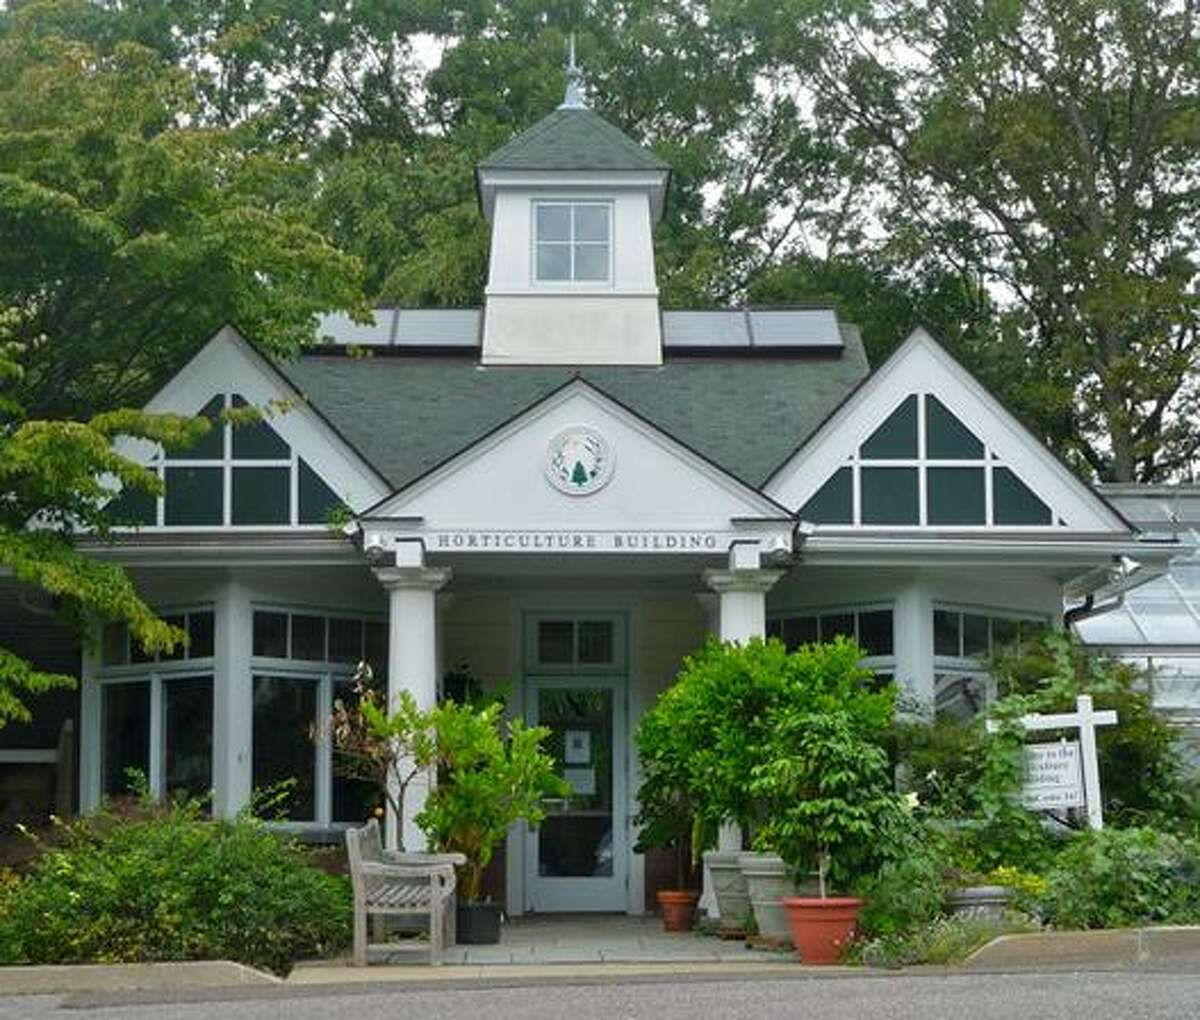 The Garden Education Center of Greenwich is hosting its Summer Plant Sale, with half-off prices for hydrangeas and weigelias. The sale continues Thursday and Friday from 9:30 a.m. to 4 p.m. at 130 Bible St., Cos Cob, in the Montgomery Pinetum Park. For info, call 203-869-9242, visit www.gecgreenwich.org or email gec@gecgreenwich.org.